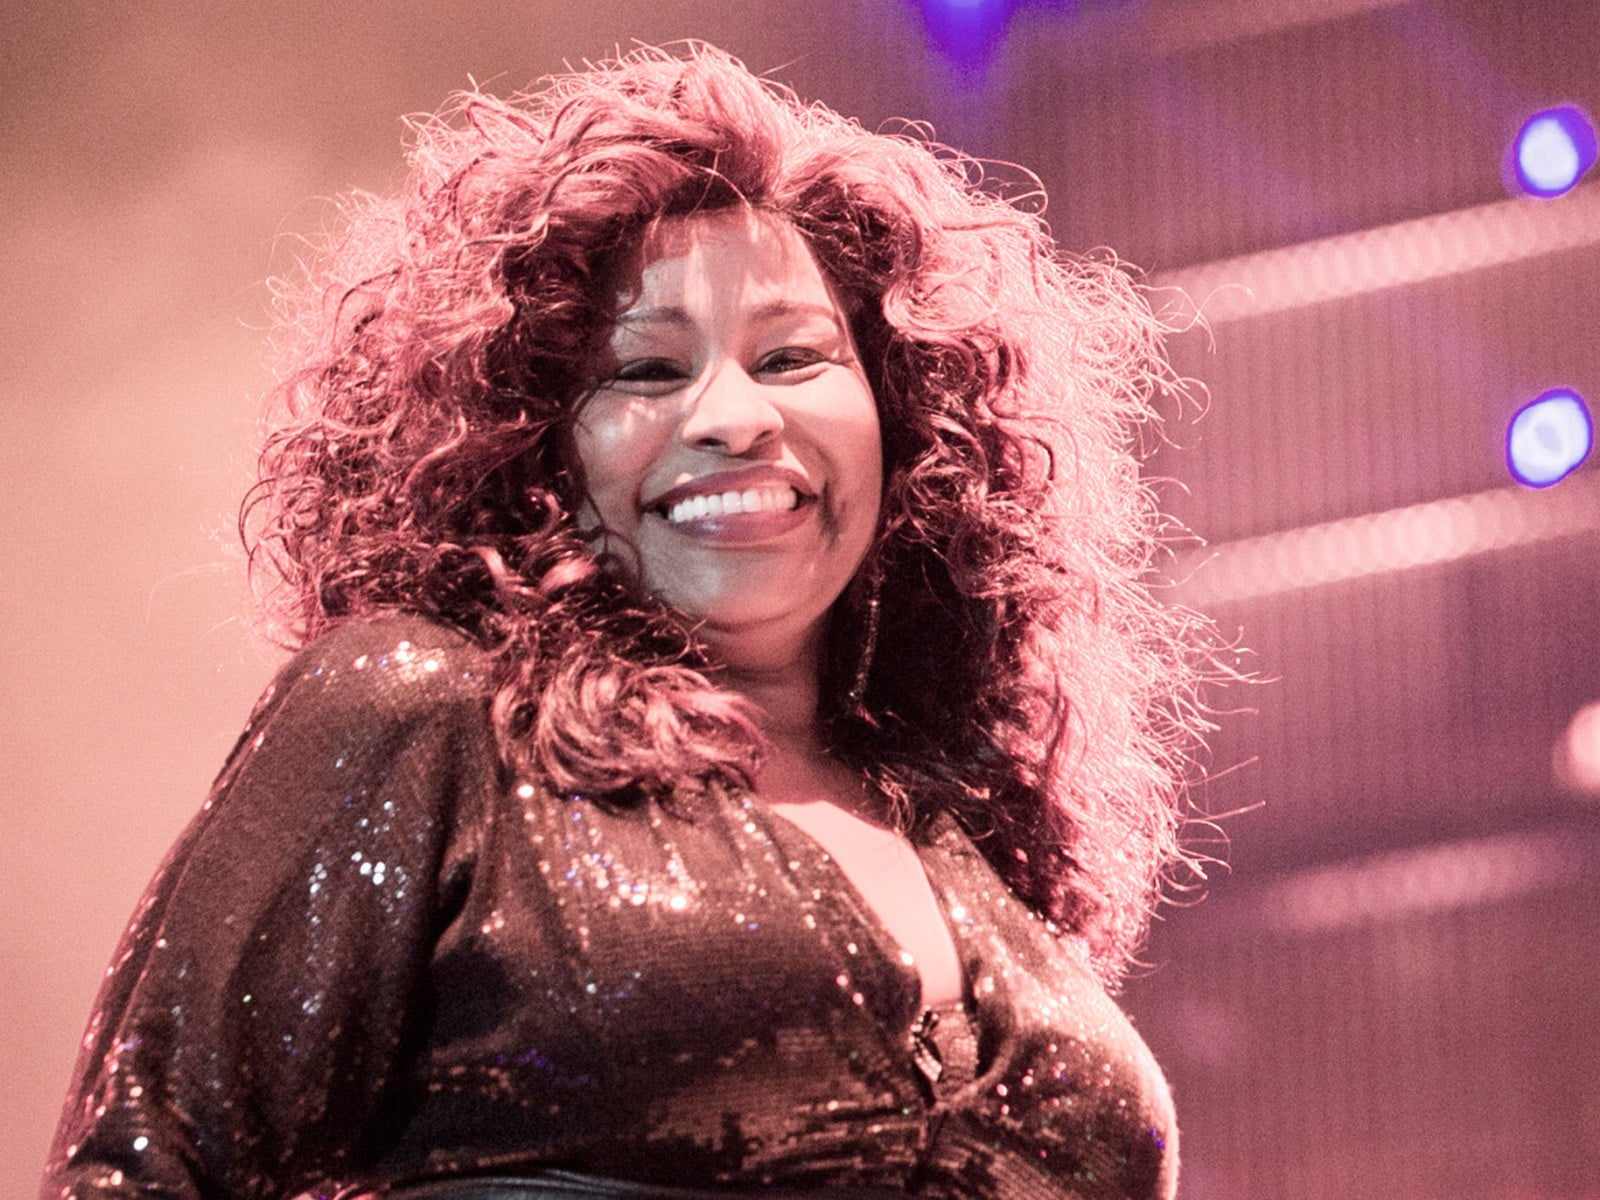 Chaka Khan has enters rehab for fentanyl - Freedom From Addiction